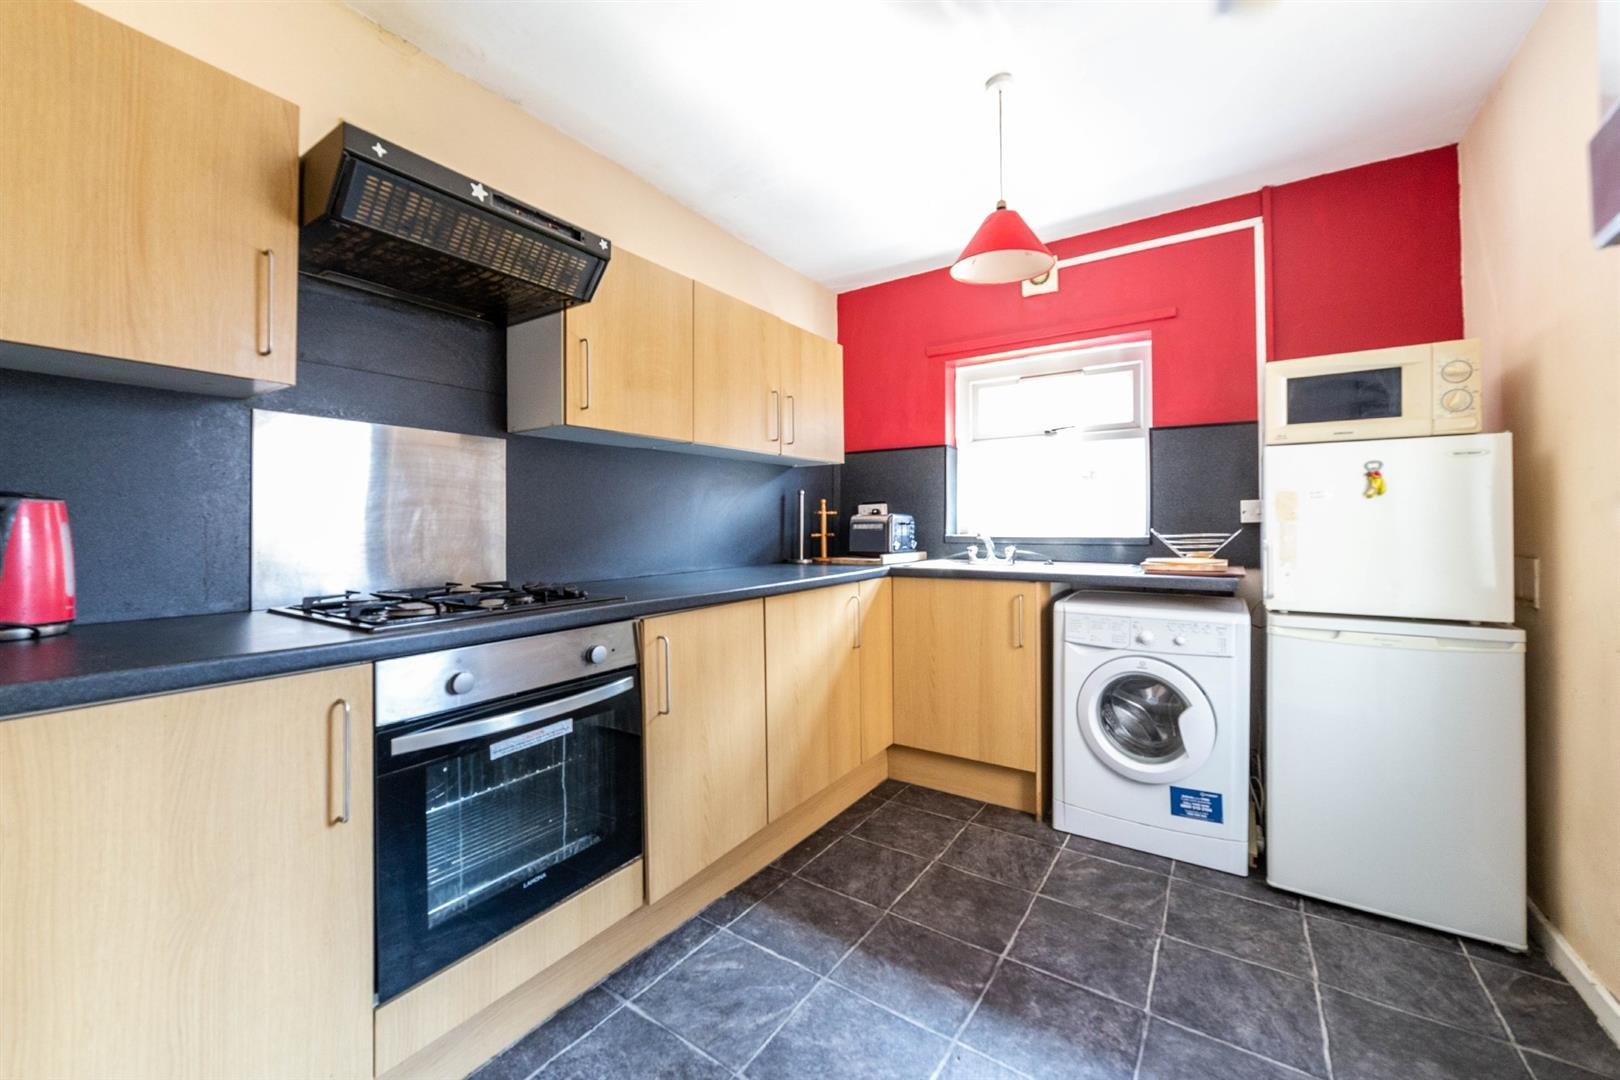 3 bed terraced house to rent in Ninth Avenue, Heaton, NE6